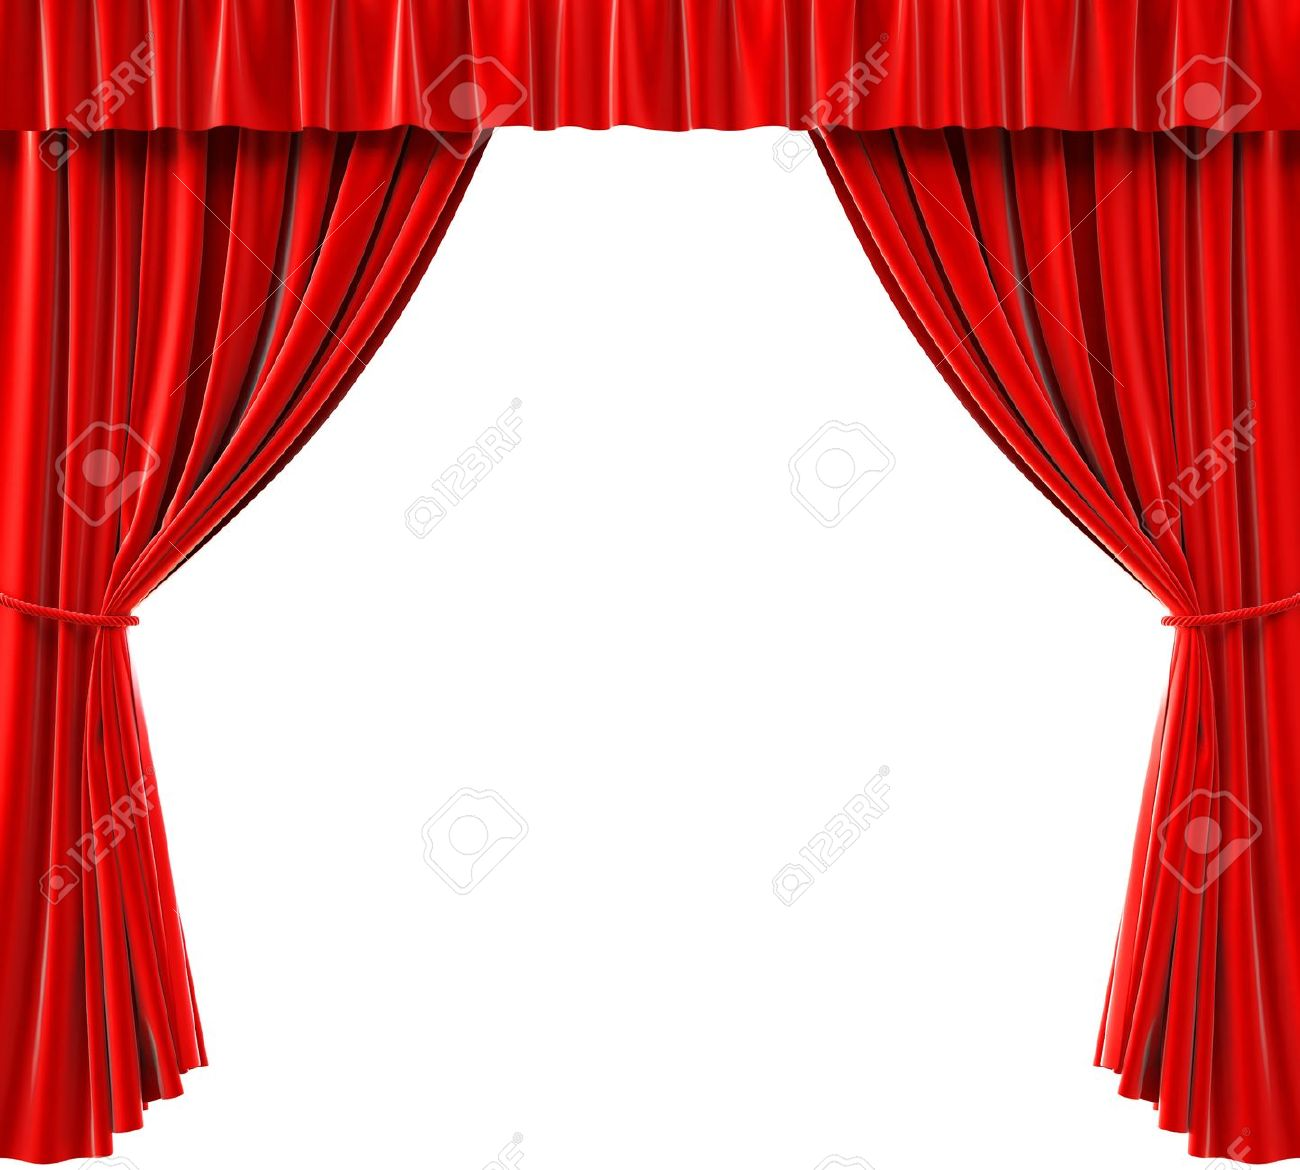 Royalty free or white curtain background drapes royalty free stock - Red Curtains On A White Background Stock Photo 15362492